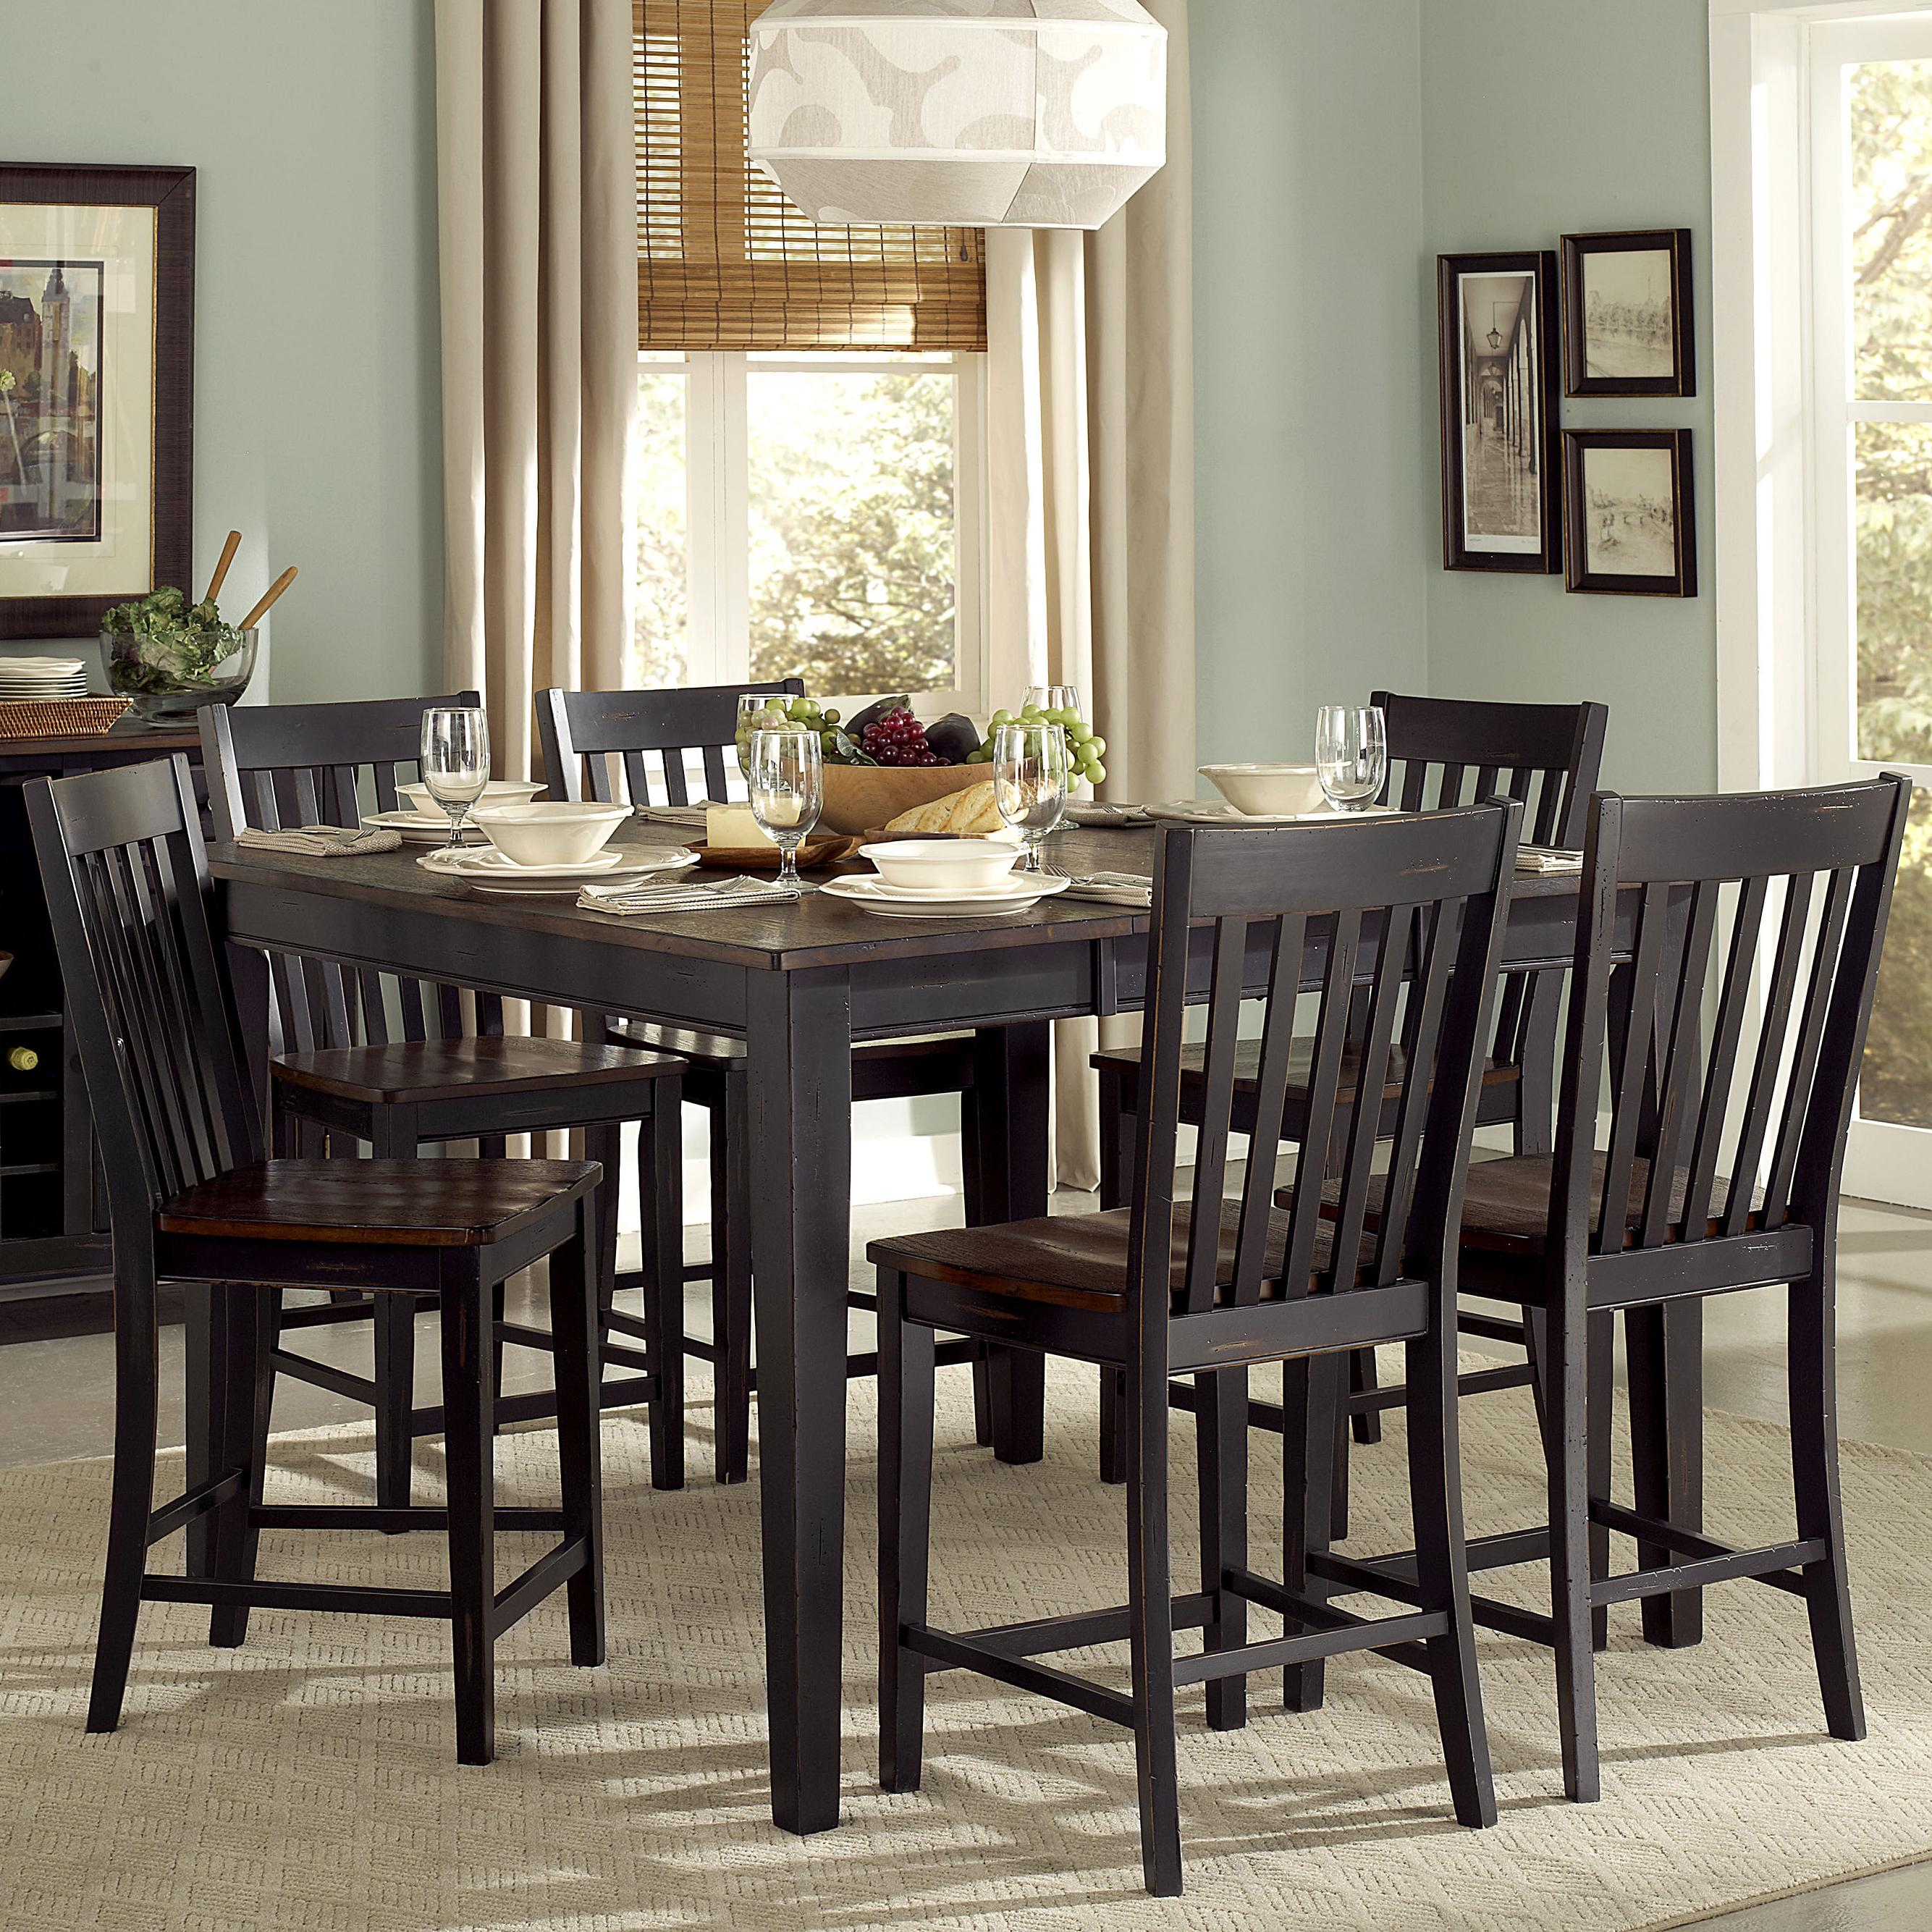 Homelegance Three Falls 7 Piece Dining Set - Item Number: 5023-36+6x24